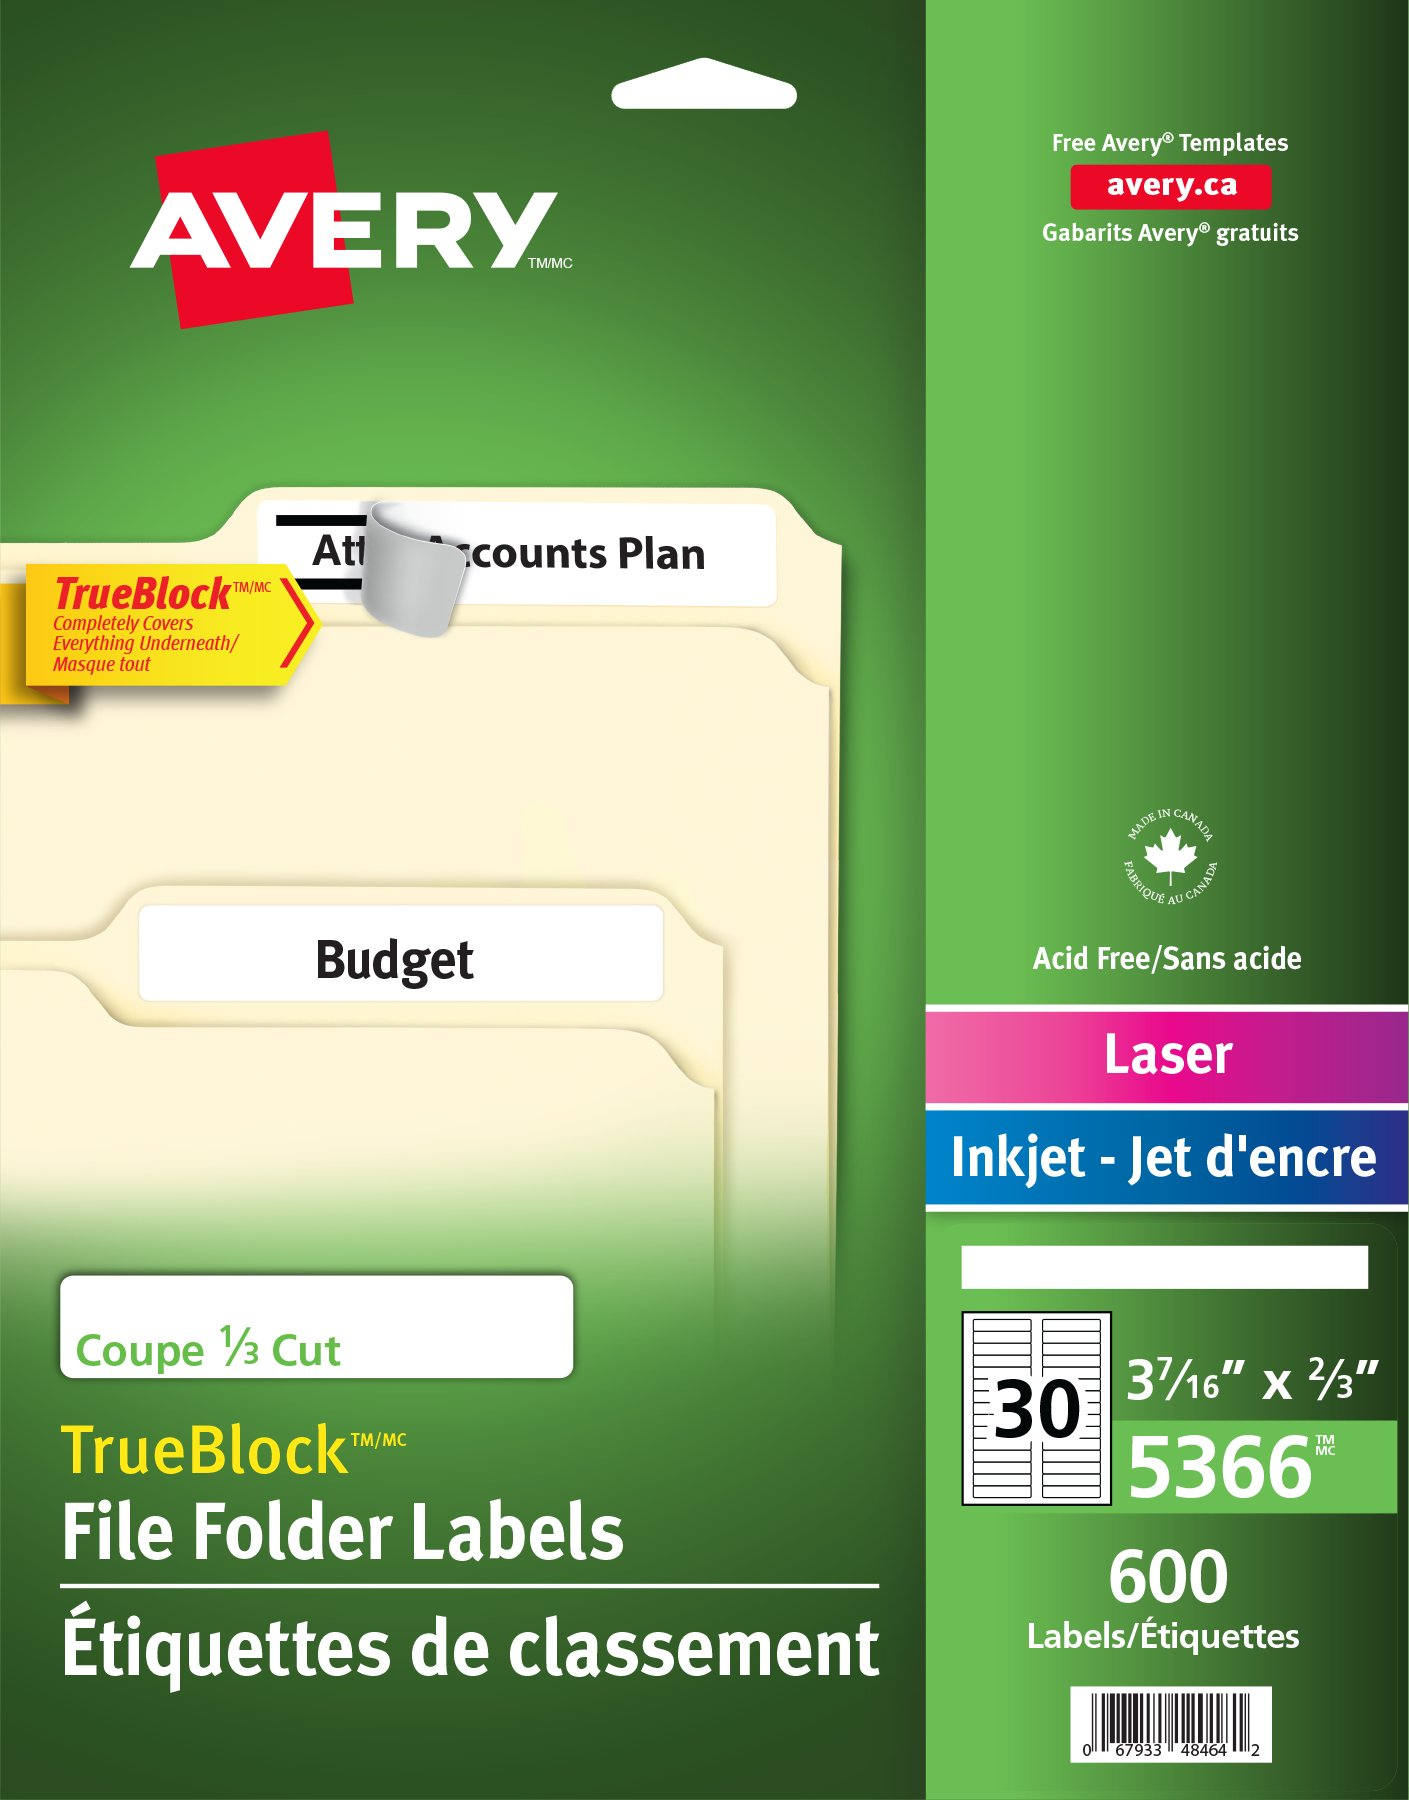 Avery templates for Microsoft Word | Avery